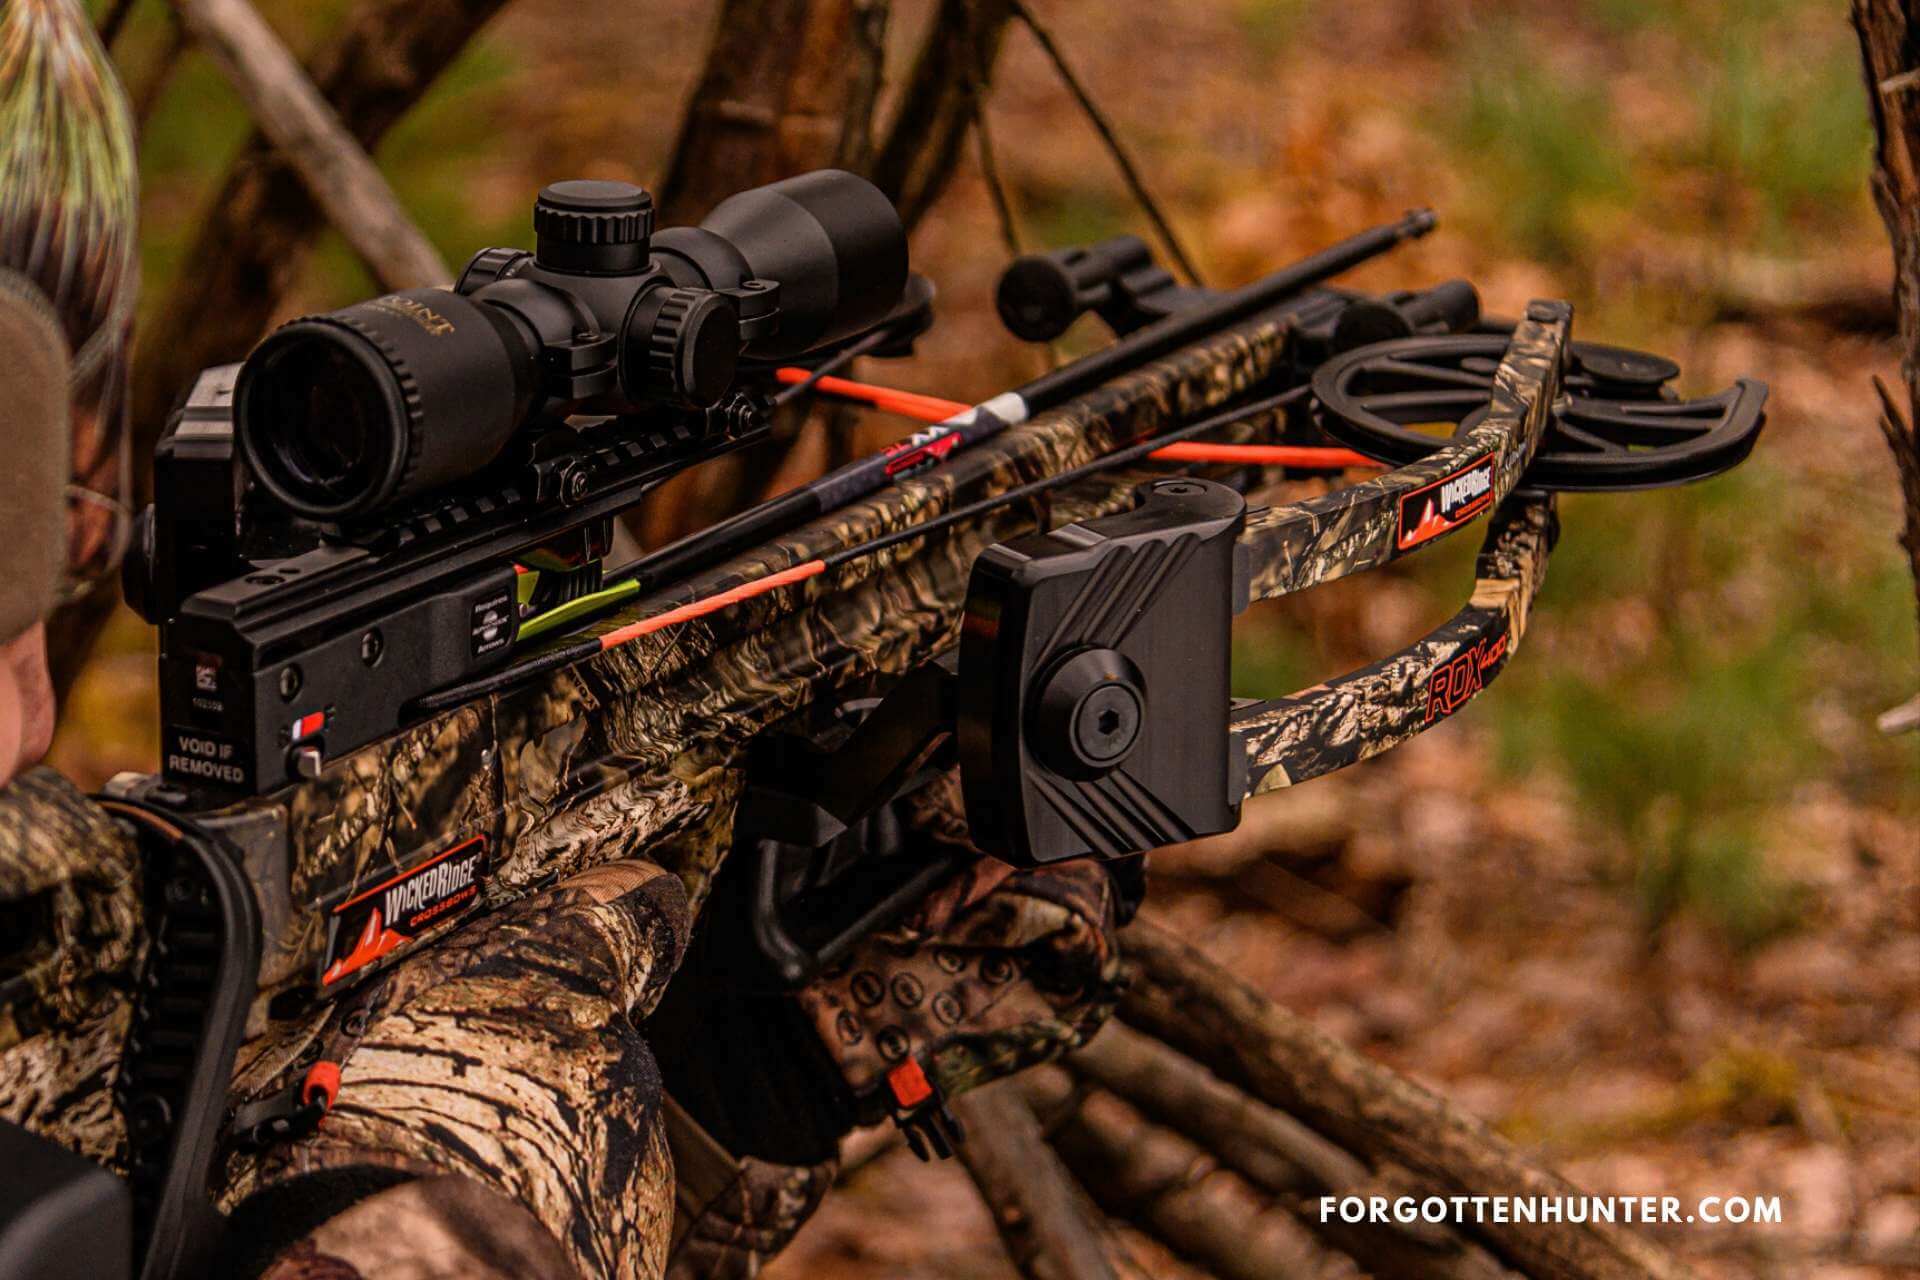 Wicked Ridge RDX 400 Reverse Draw Crossbow Review